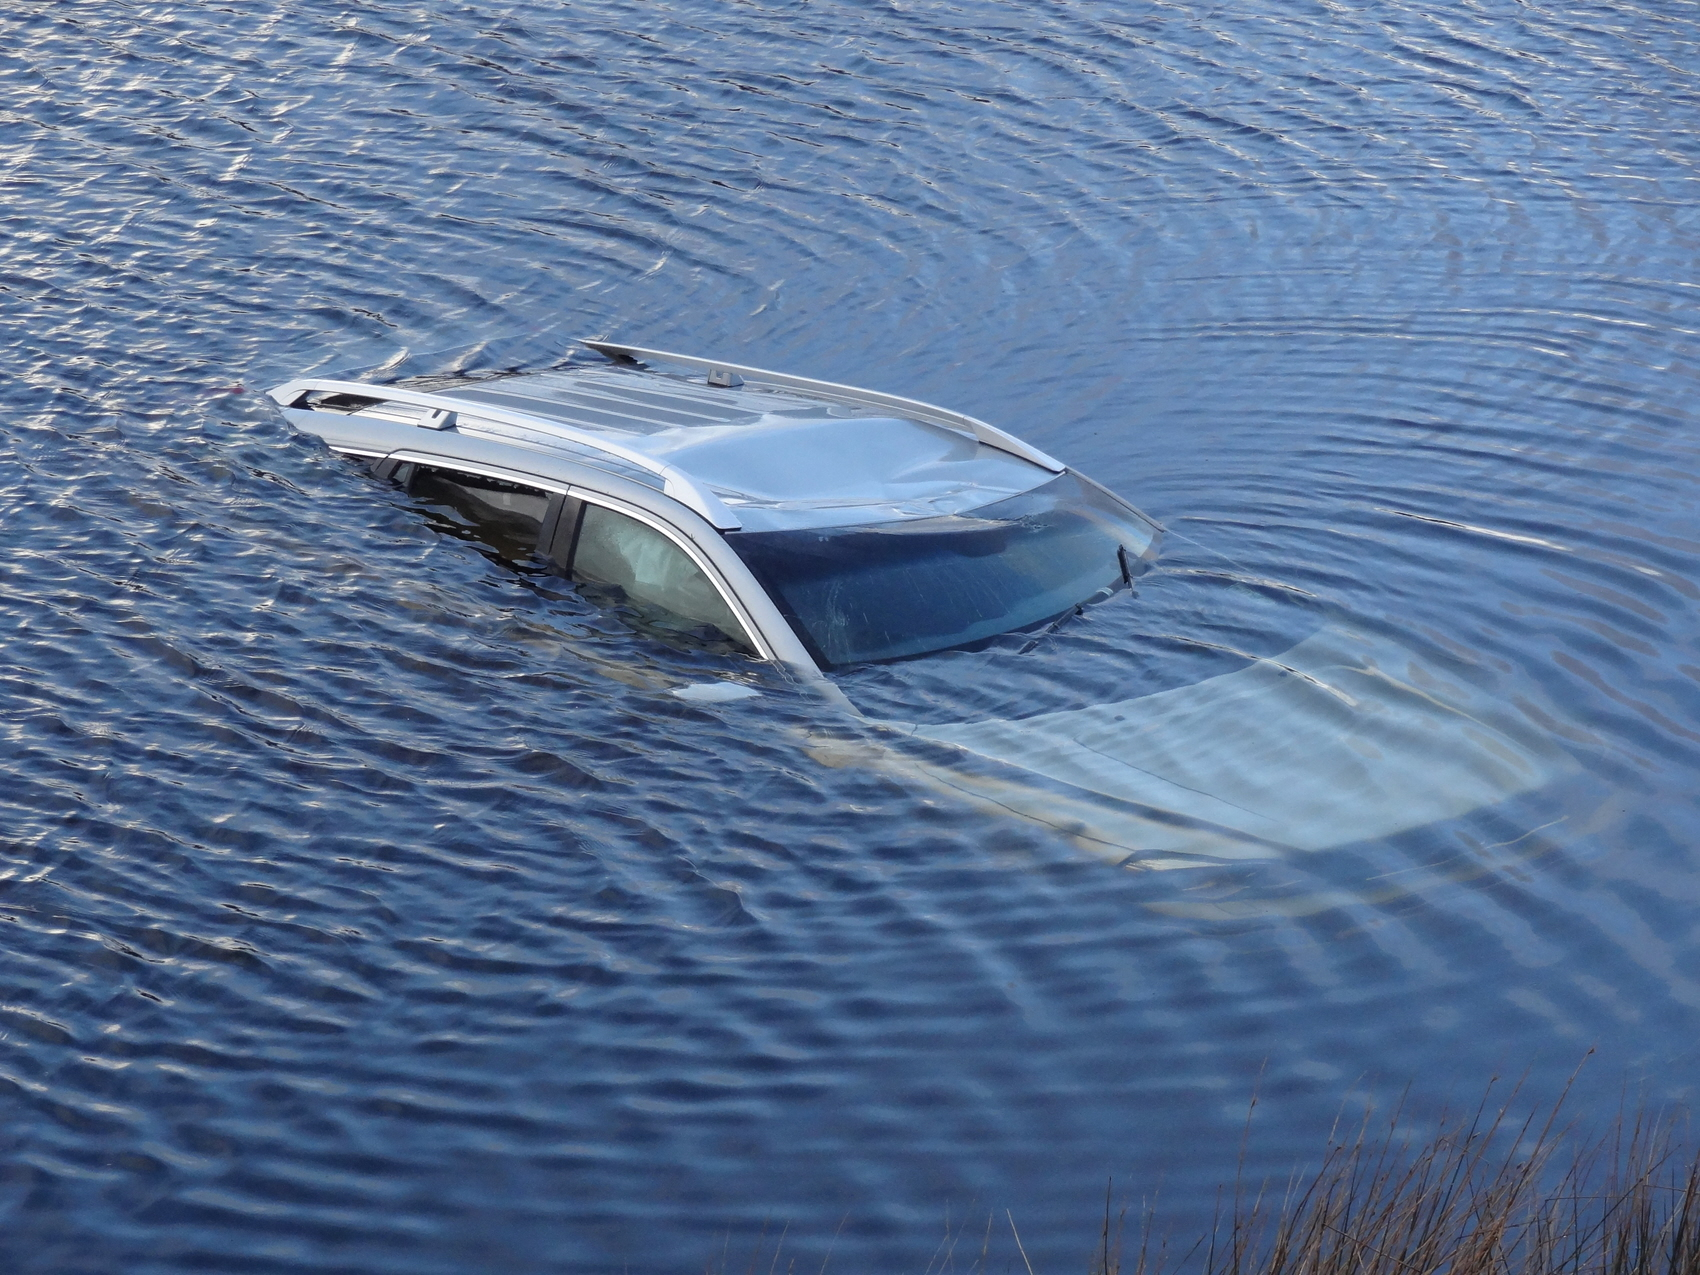 How To Get Out Of A Drowning Car